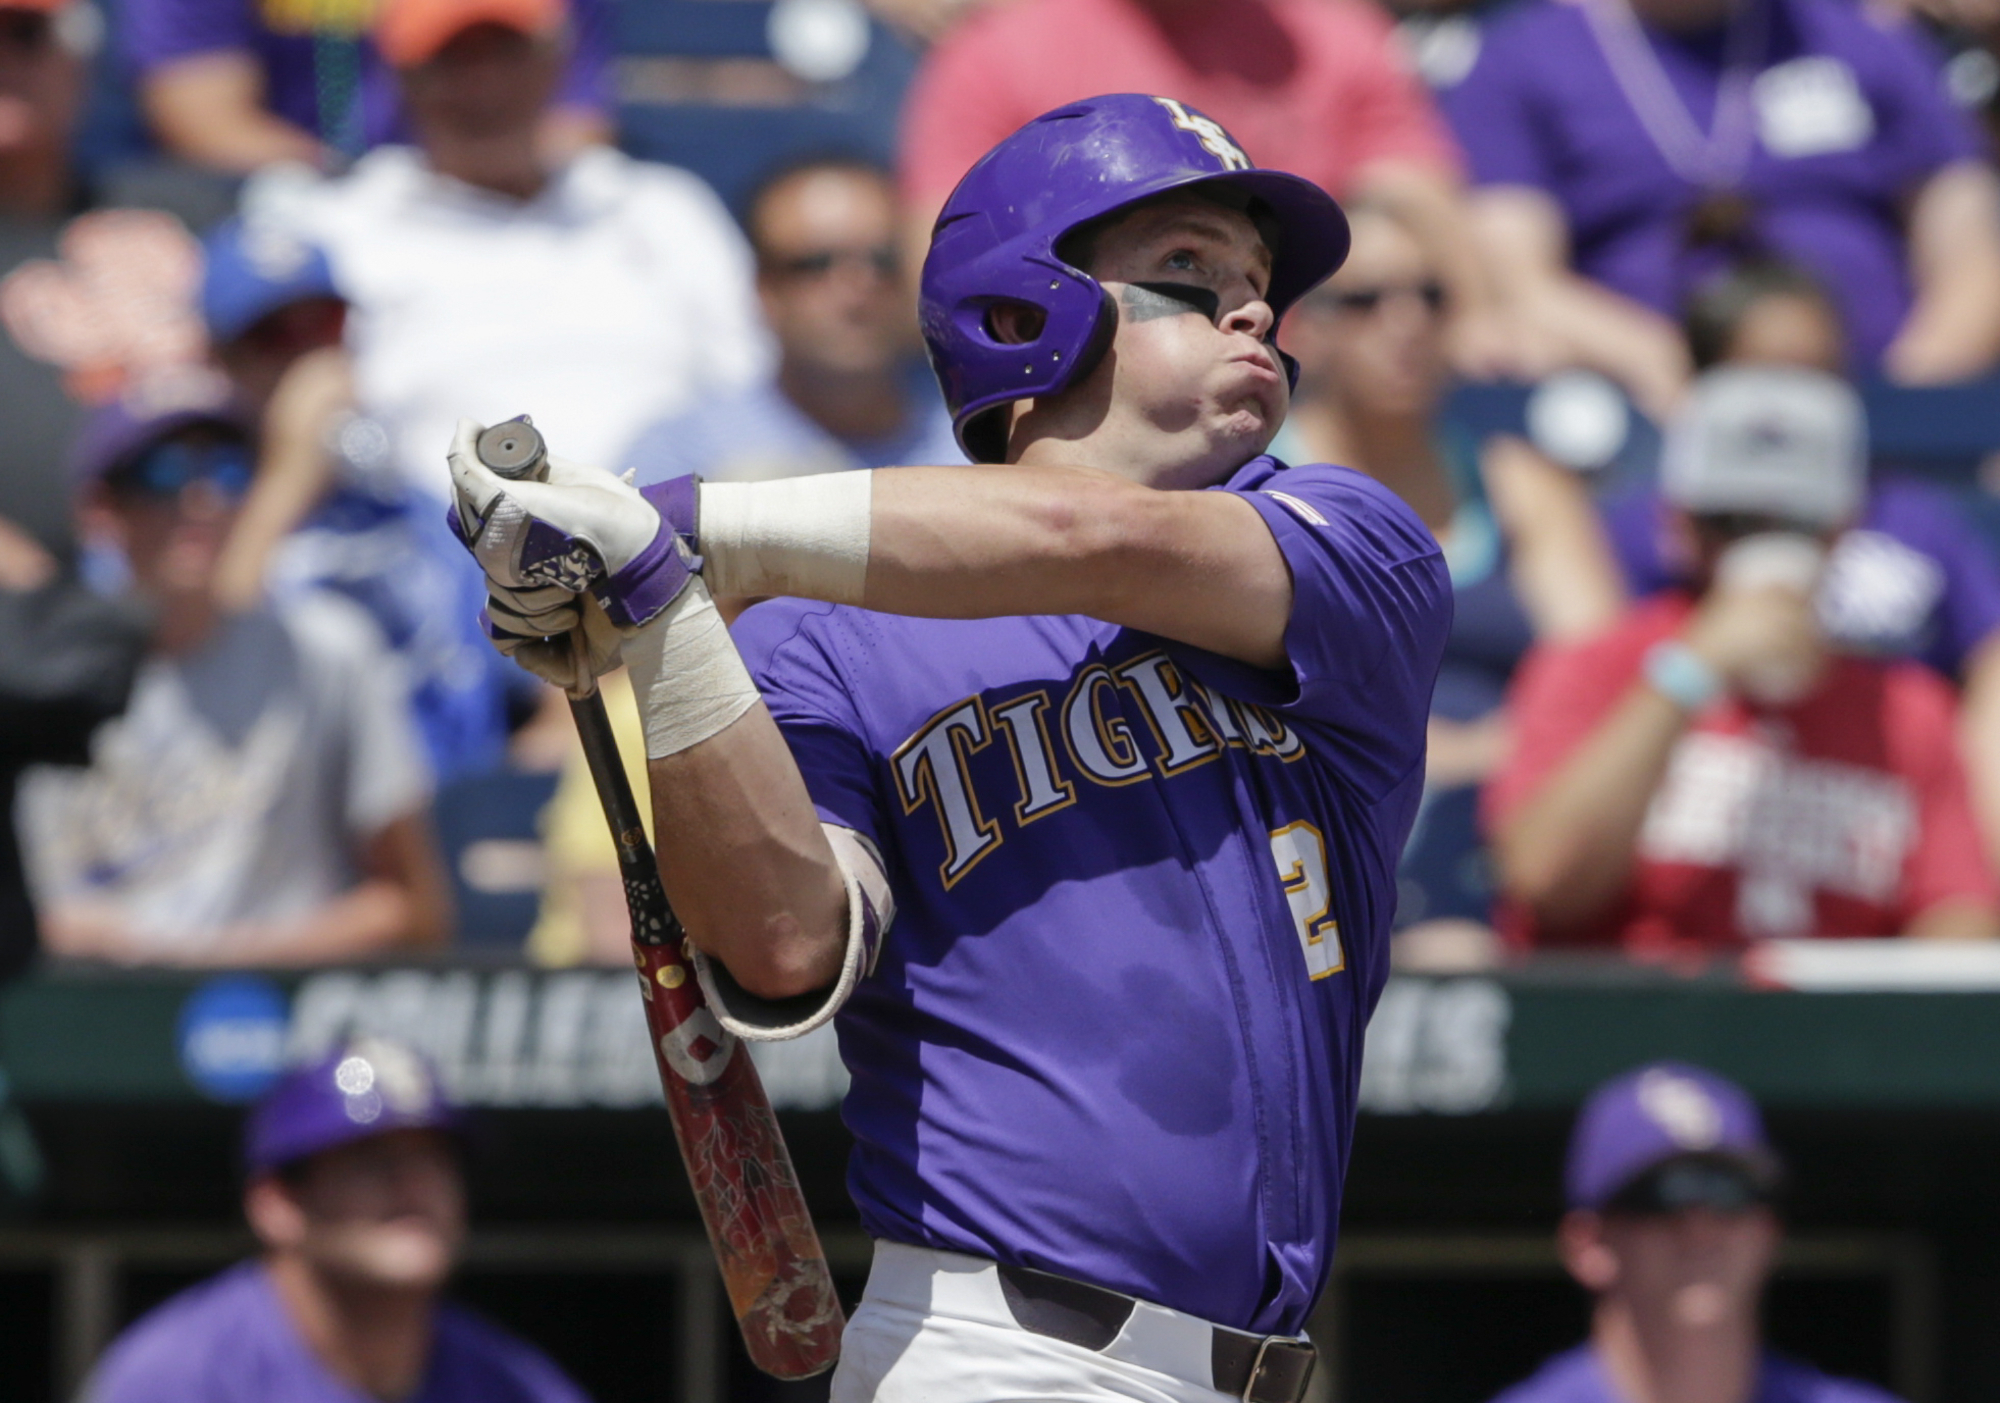 LSU's Michael Papierski (2) follows through on his three-run home run against Oregon State in the third inning of an NCAA College World Series baseball elimination game in Omaha, Neb., Saturday, June 24, 2017. (AP Photo/Nati Harnik)